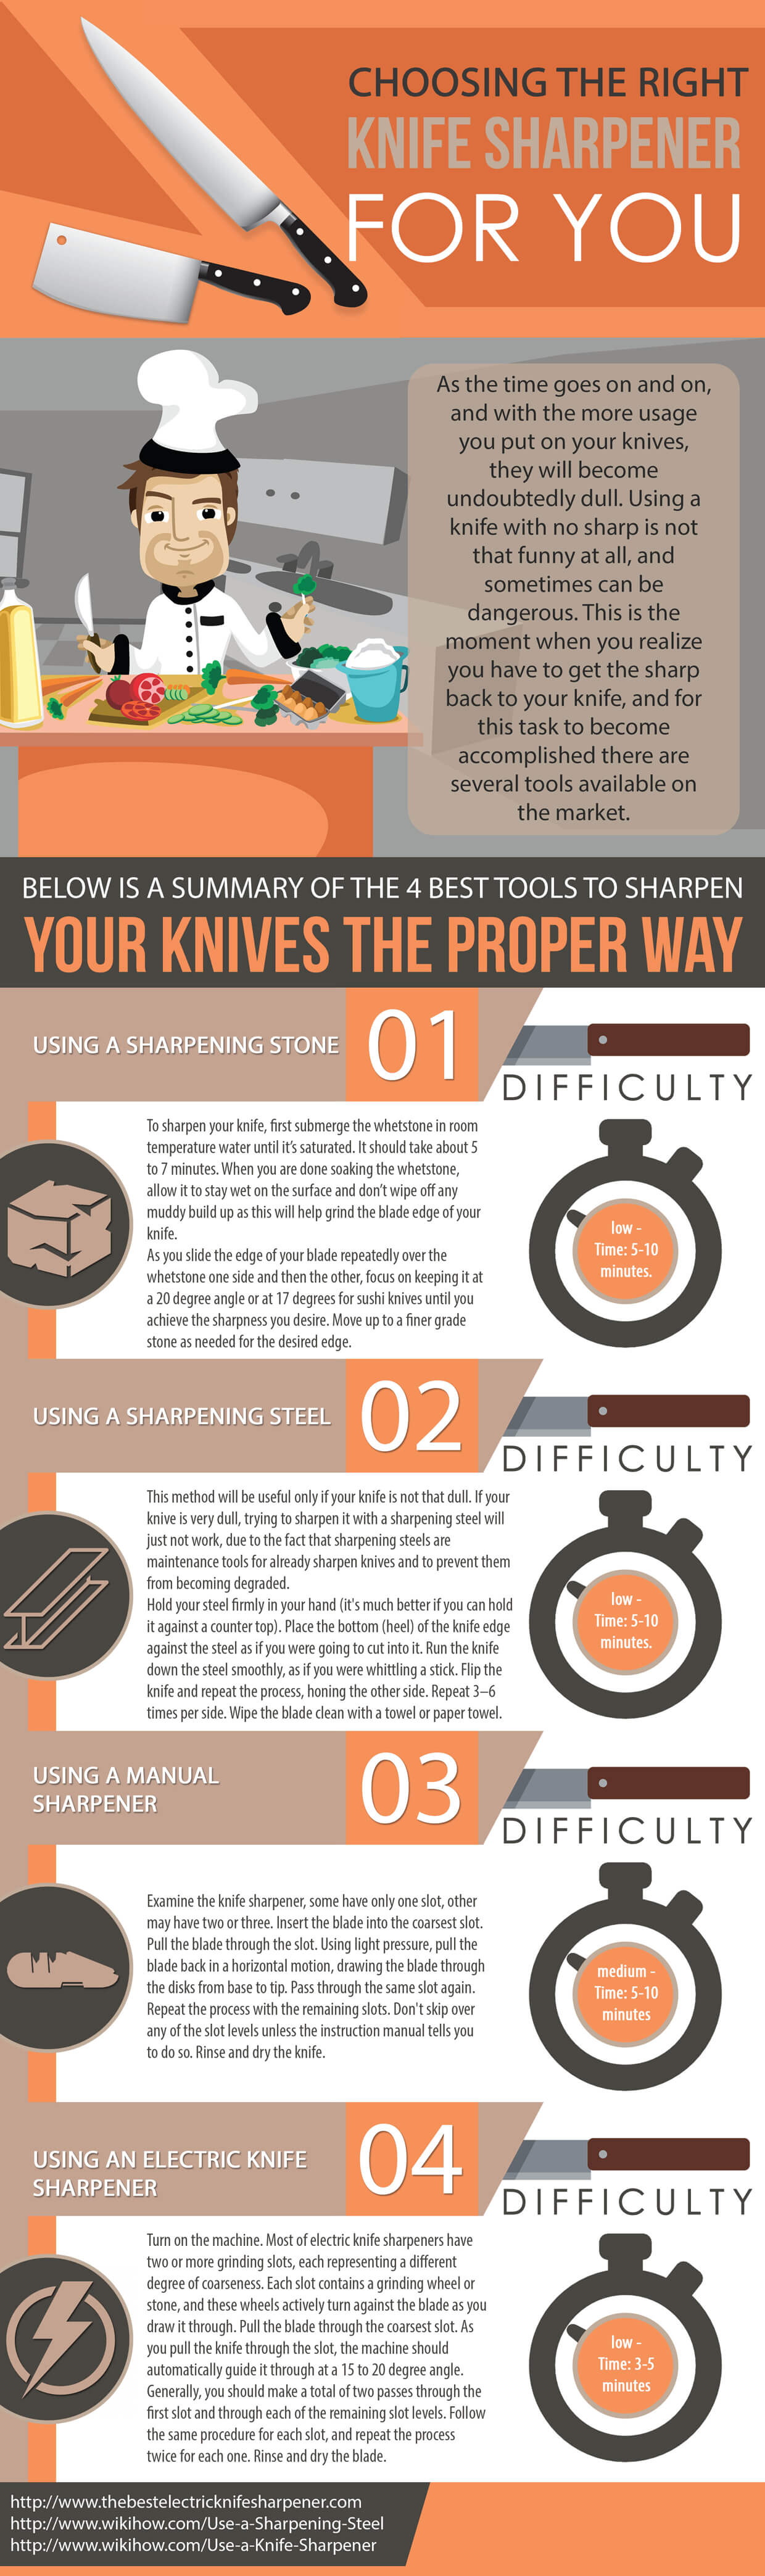 Choosing the Right Knife Sharpener for You